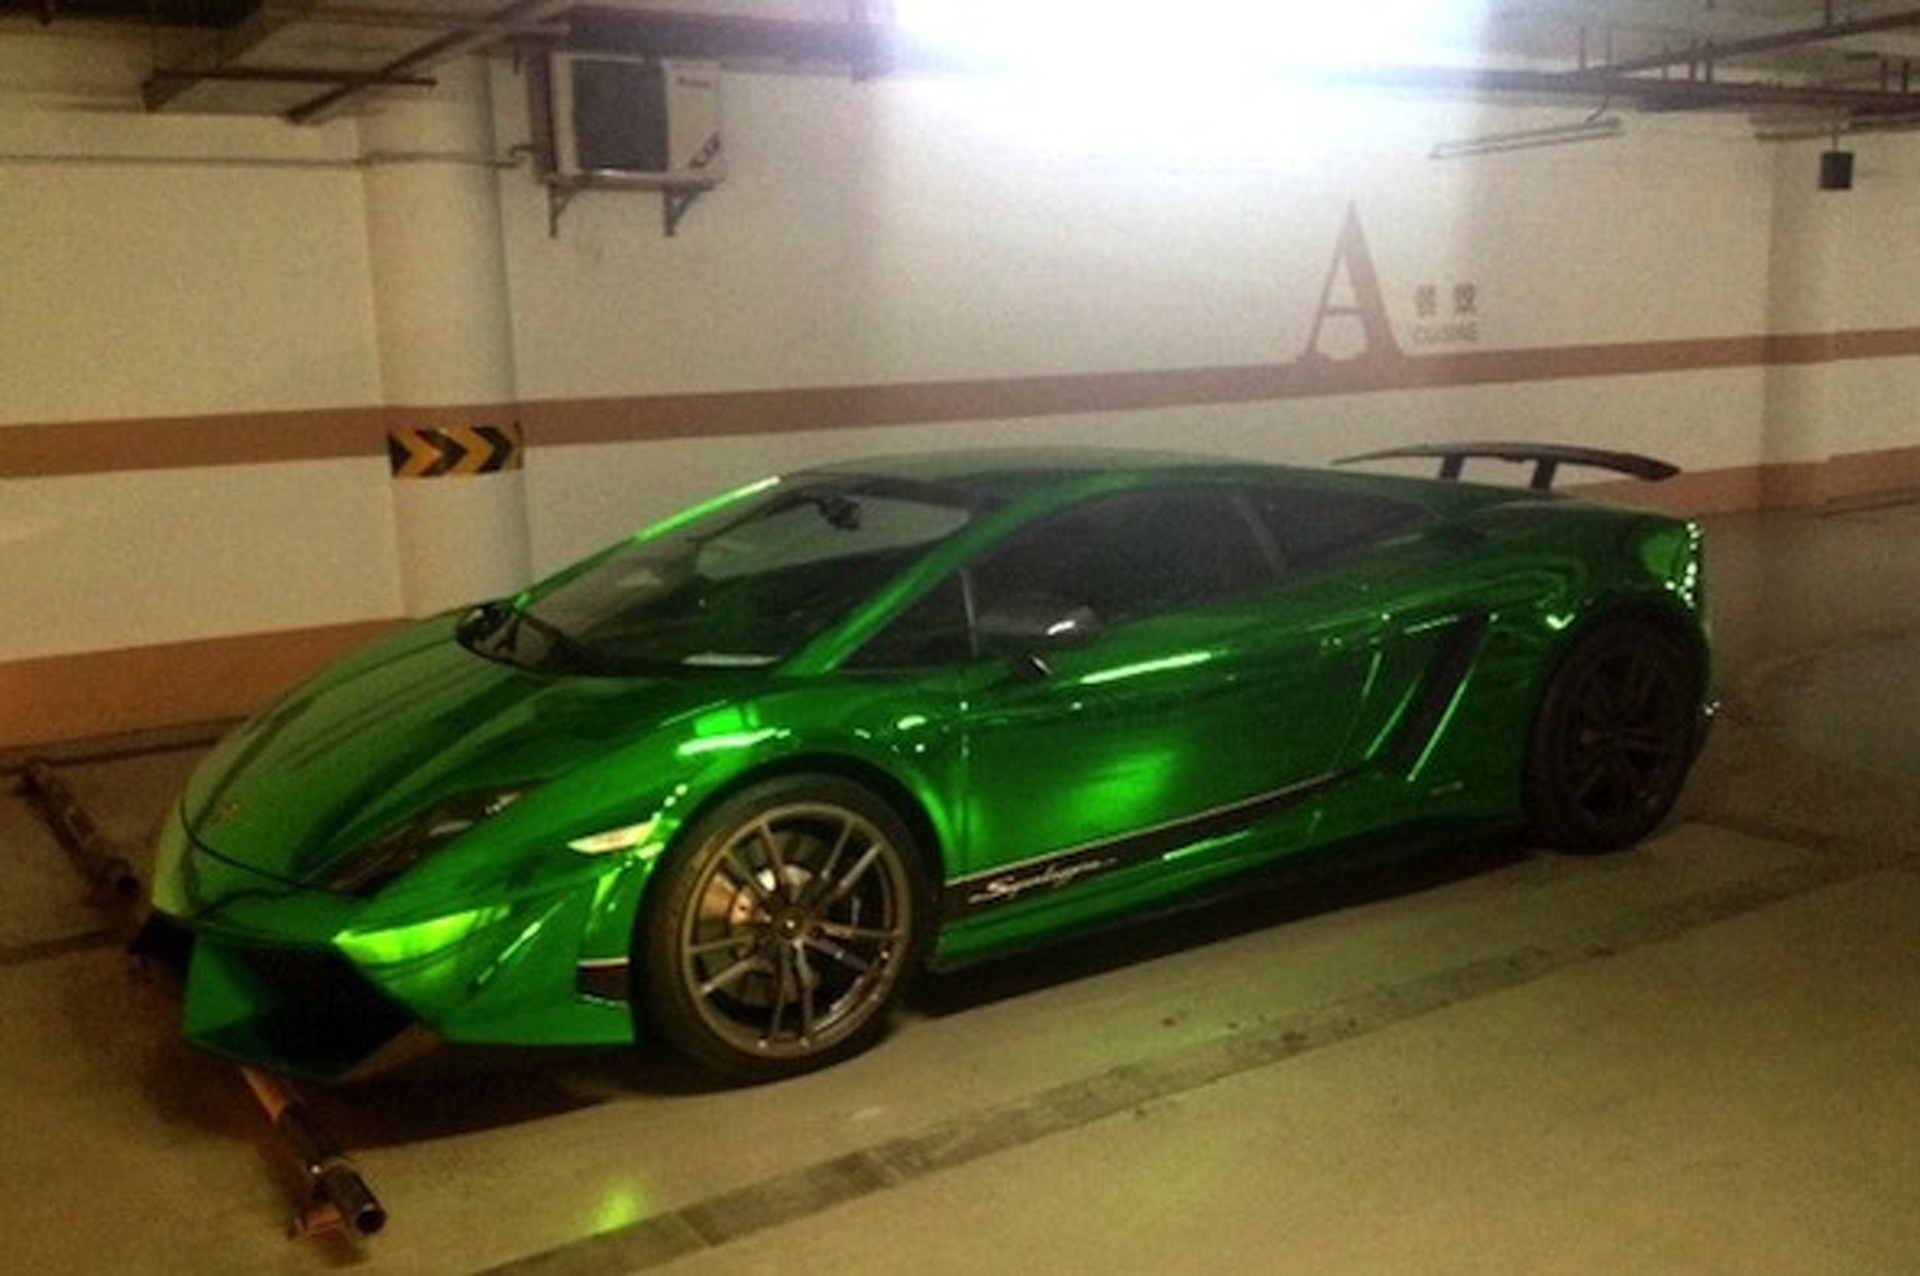 Chinese Lamborghini Gallardo Superleggera Wrapped in Chrome Green